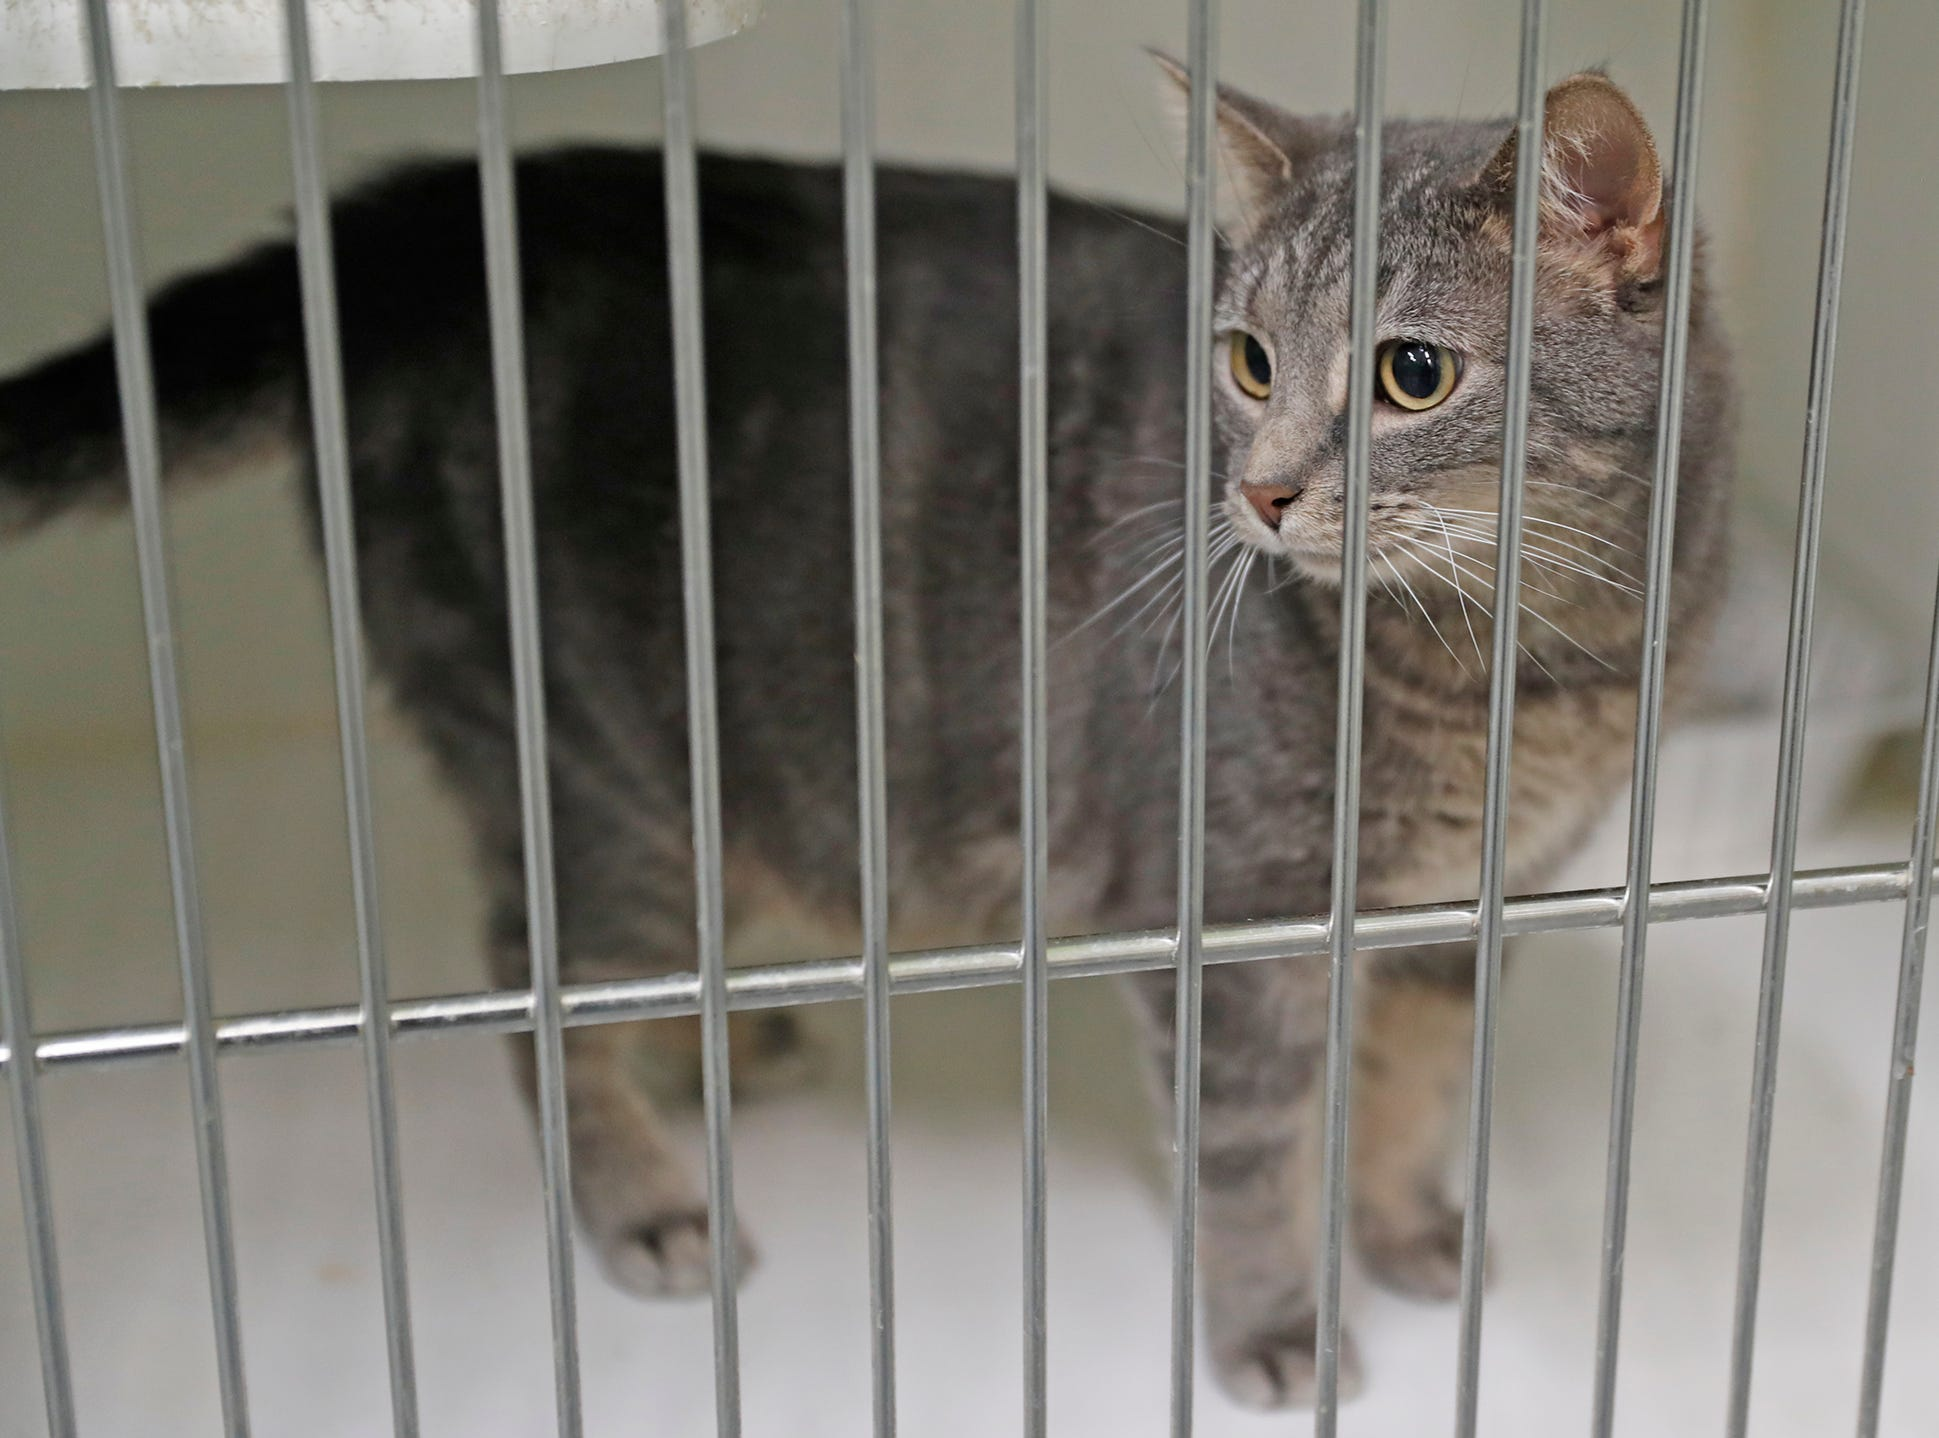 Mustard is a female two-year-old gray tabby domestic shorthair waiting on a forever home at Indianapolis, Animal Care Services, 2600 S Harding St, on Sunday, Jan. 27, 2019.  She is front declawed.